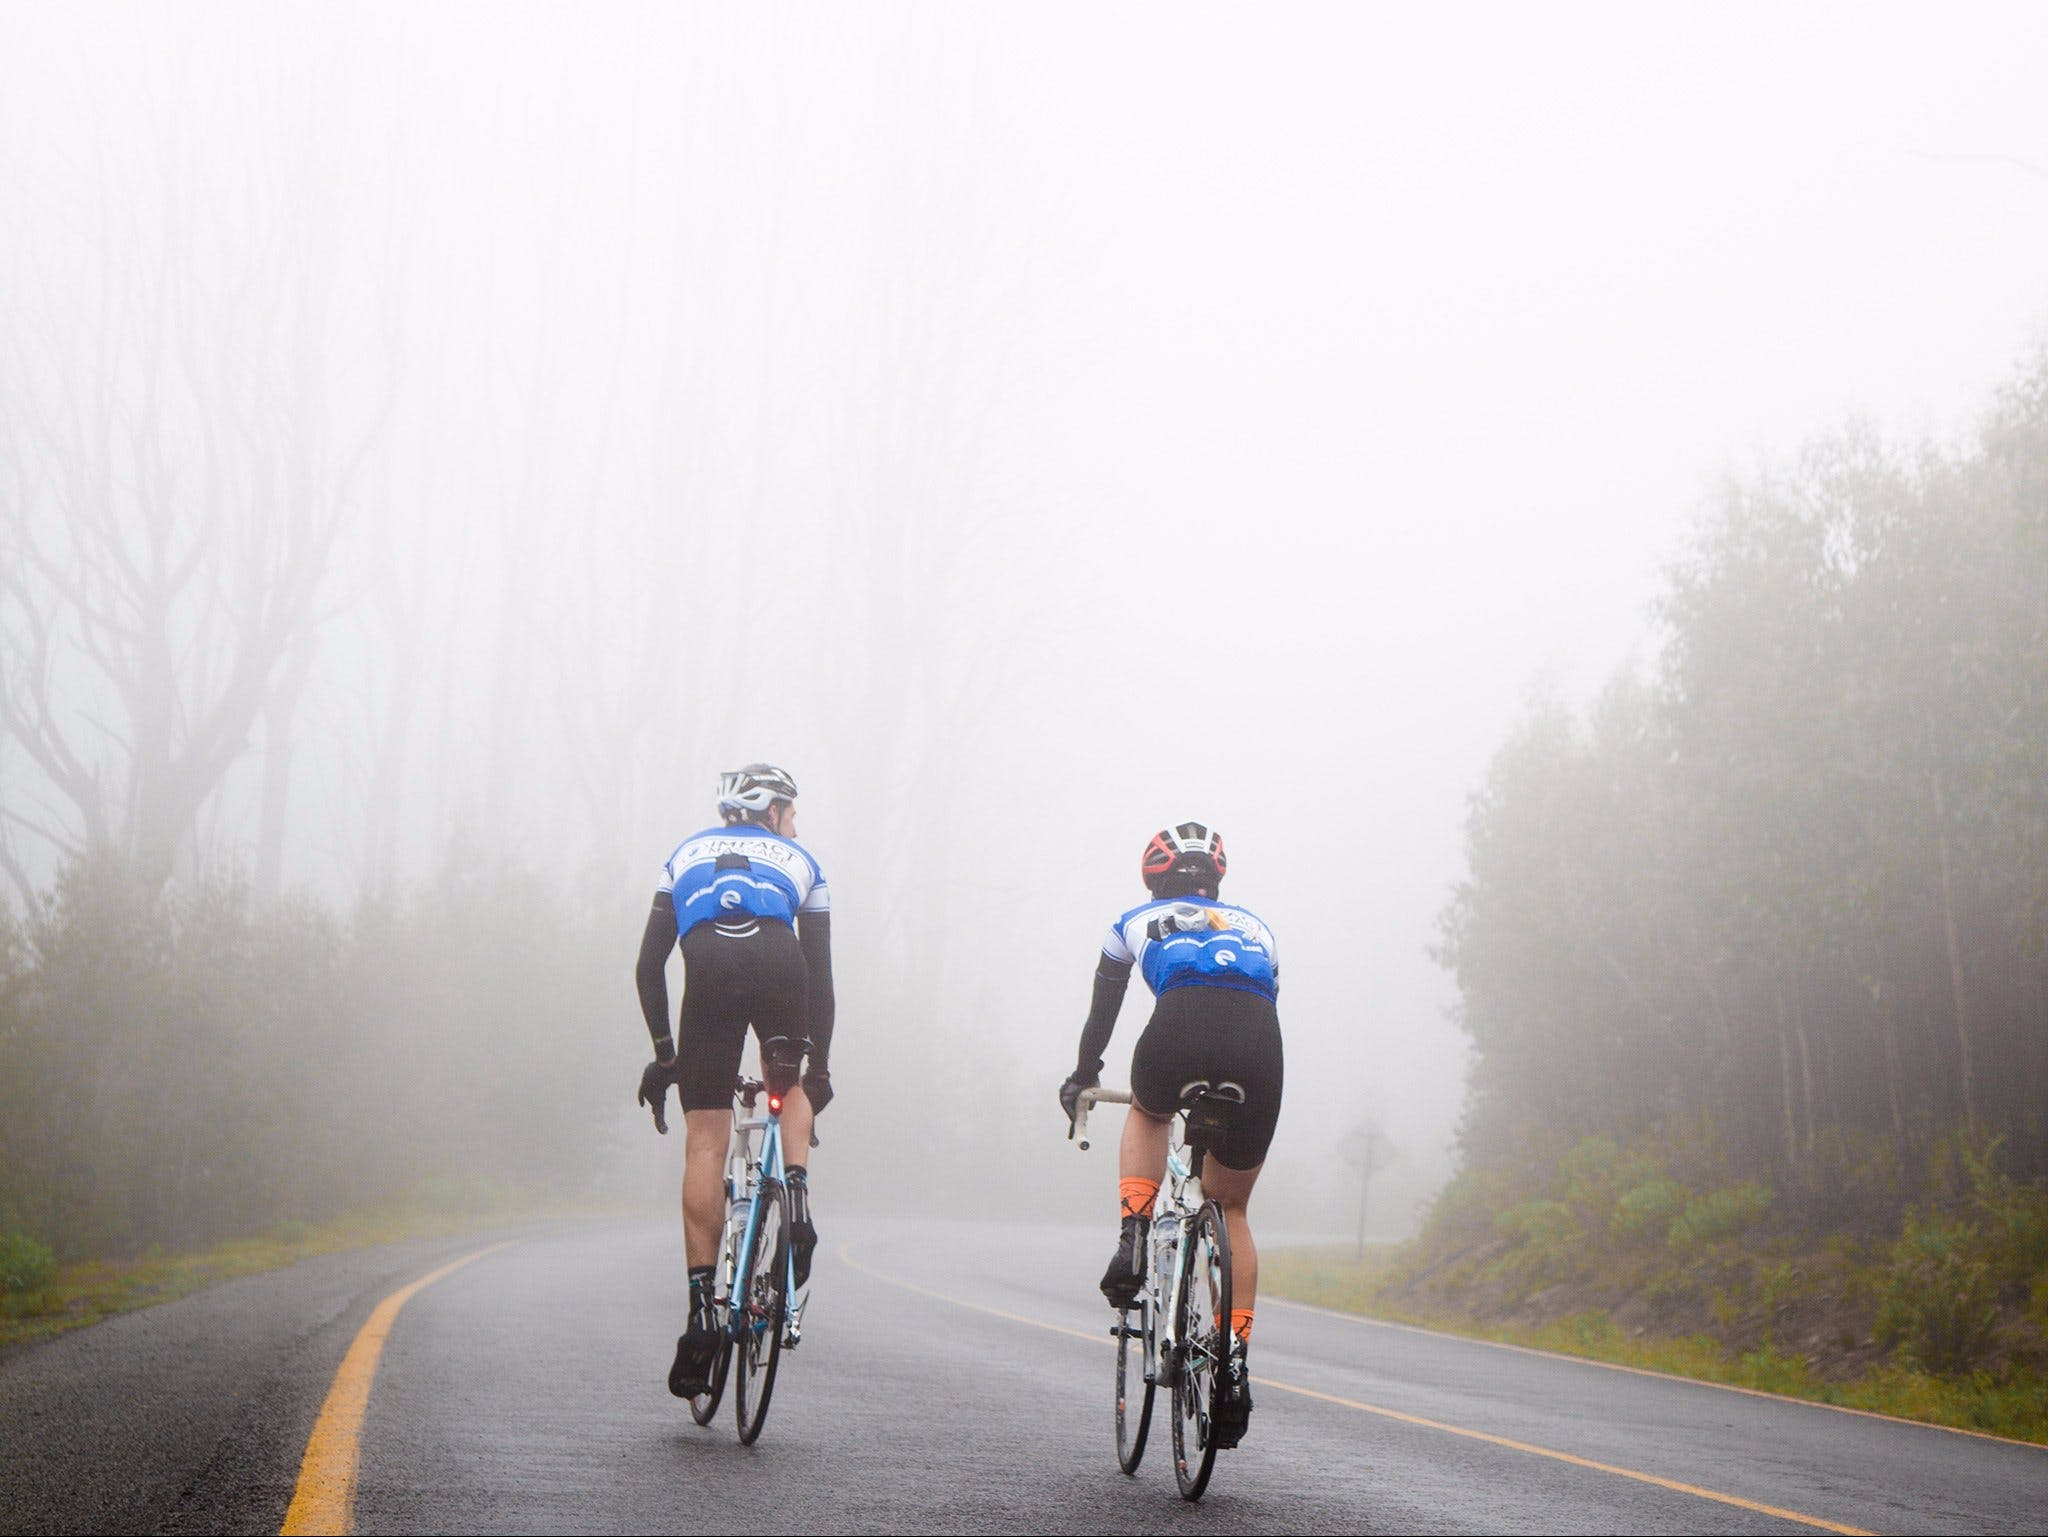 7 Peaks Ride - Lake Mountain - Palm Beach Accommodation